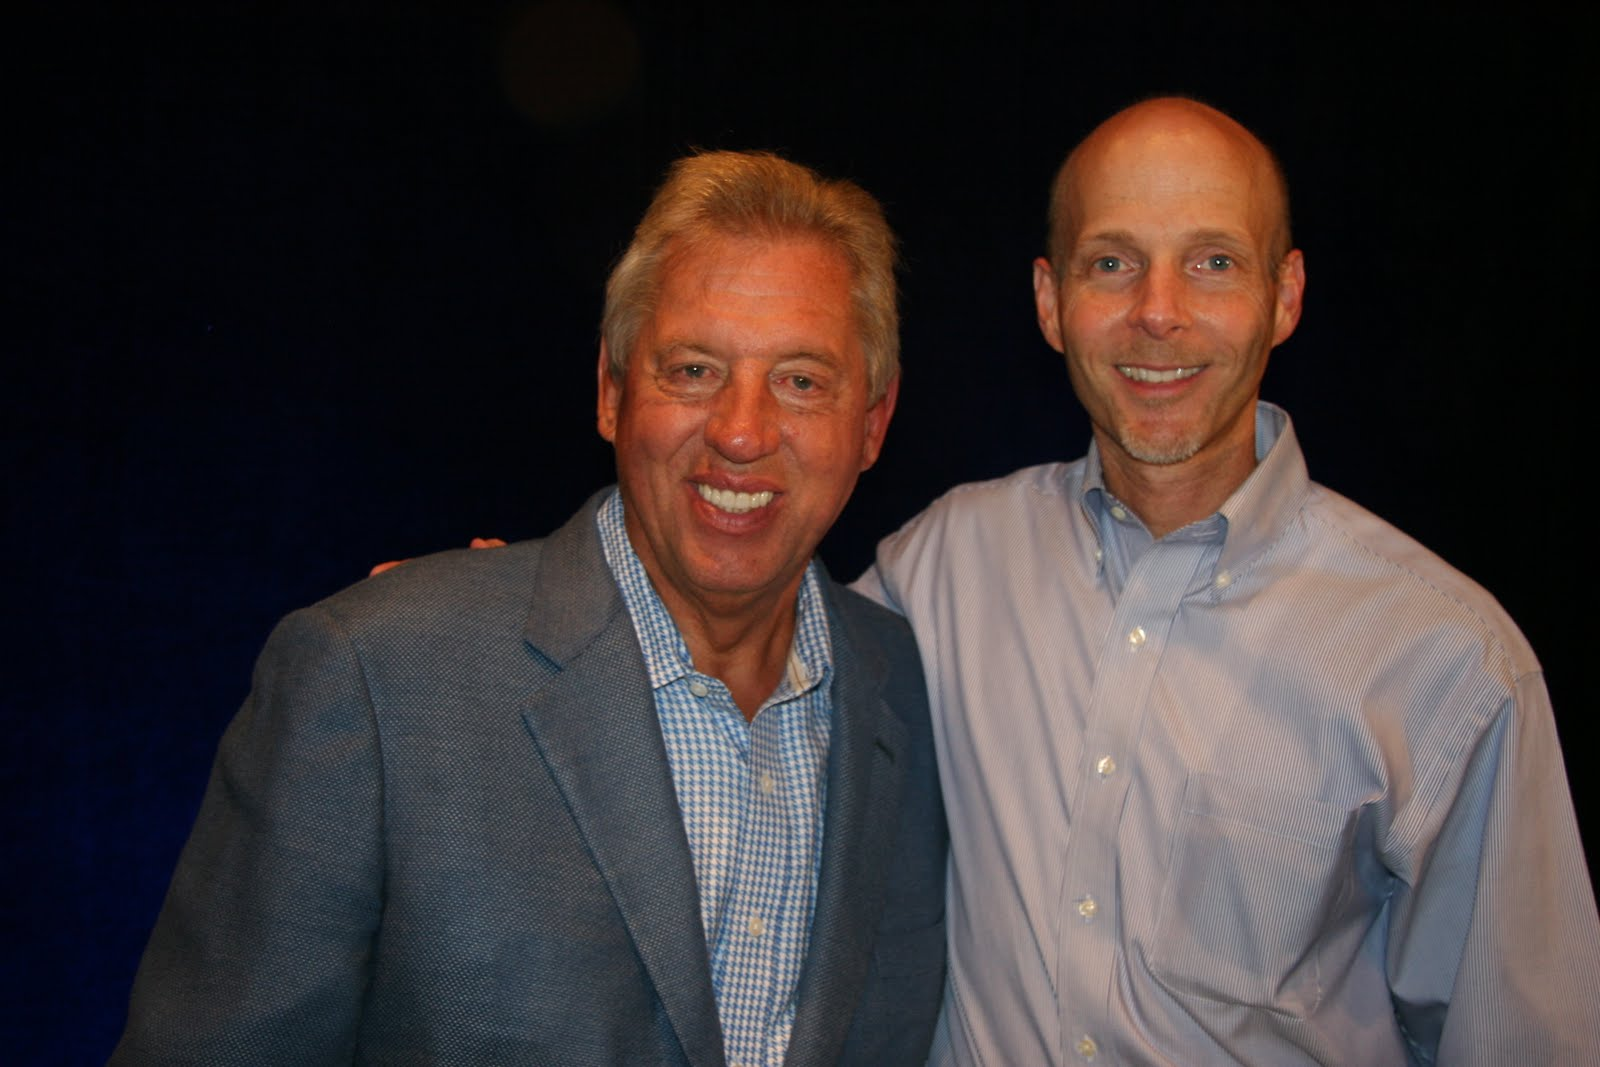 Doug with John Maxwell